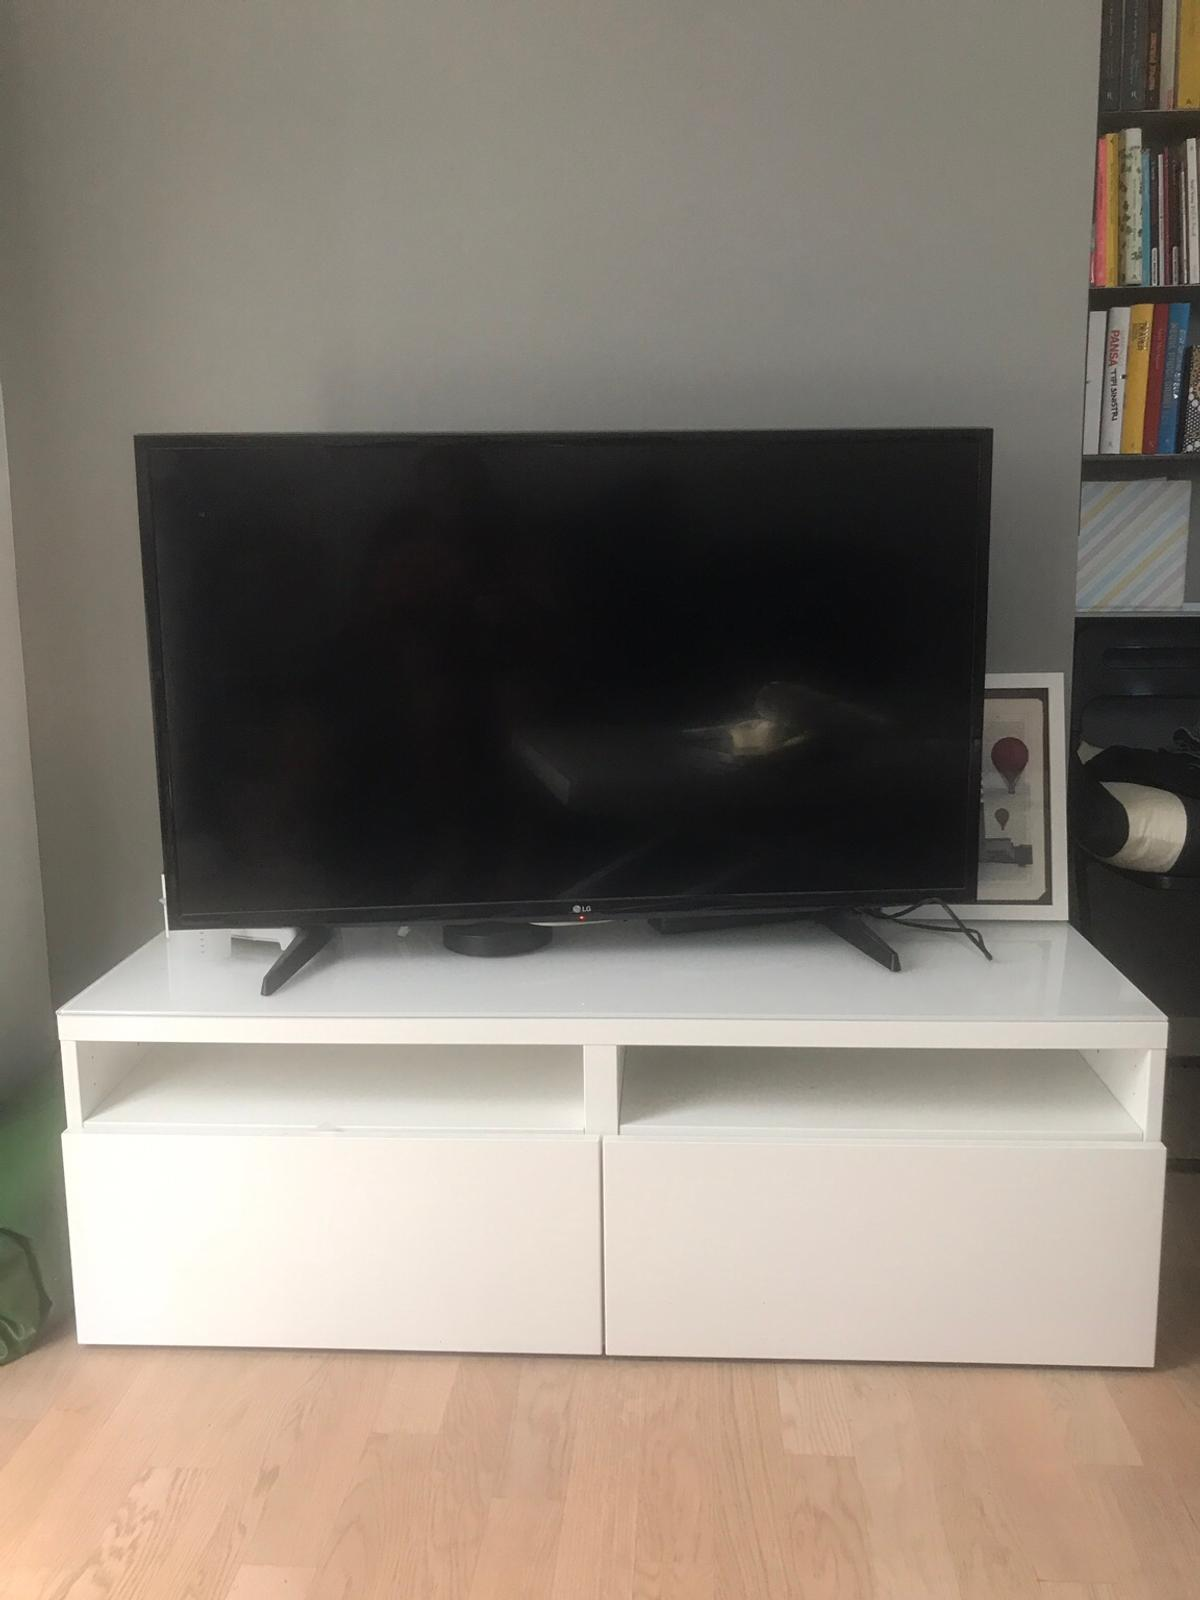 Porta Tv Con Ruote Ikea.Mobile Porta Tv Ikea Besta In 20161 Milano For 40 00 For Sale